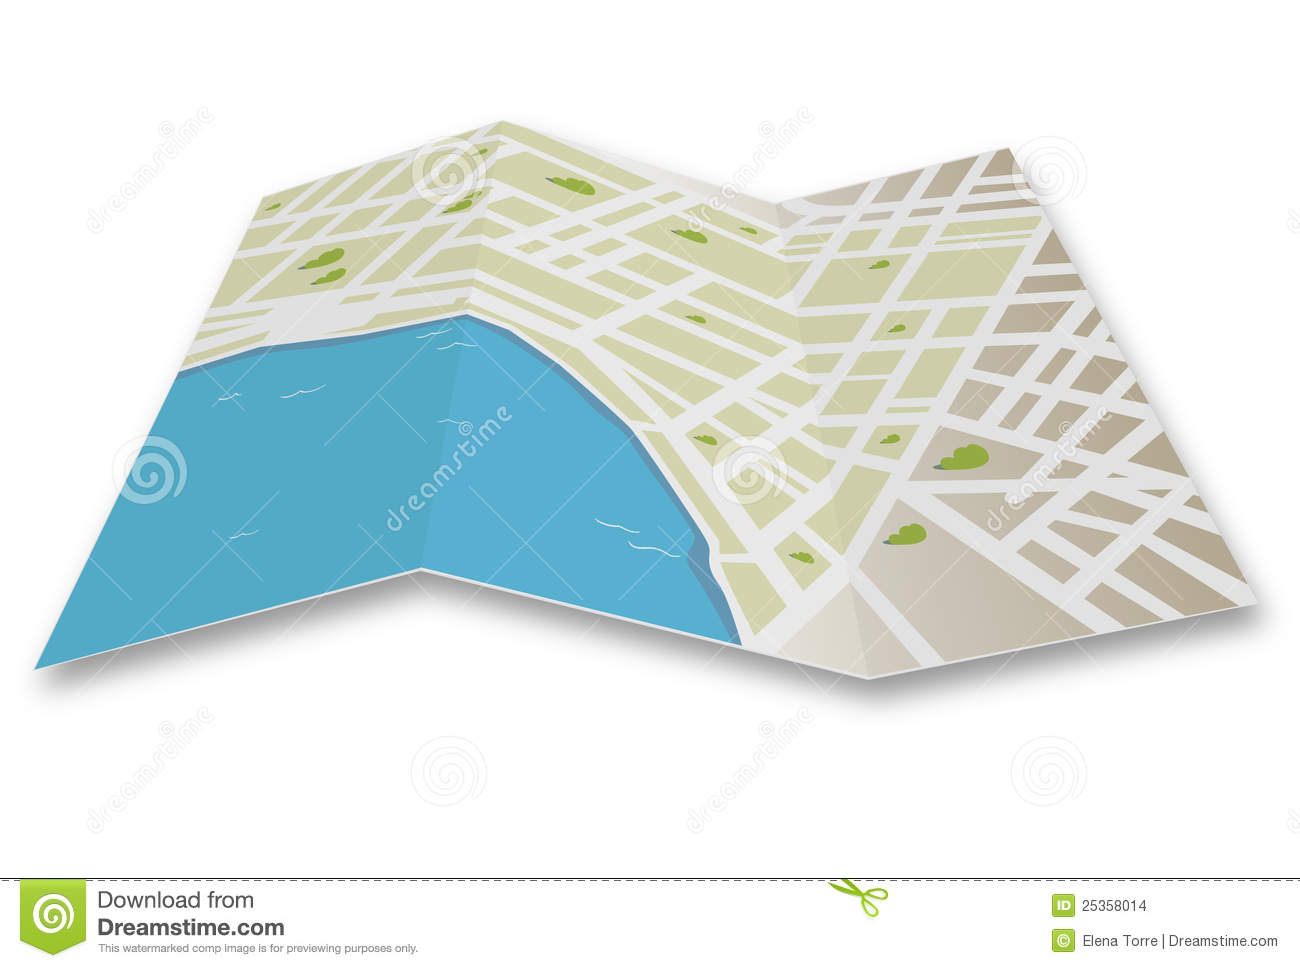 Folded road map clipart banner freeuse Street Map A Illustration Of Stock Vector And Royalty Free Gps ... banner freeuse